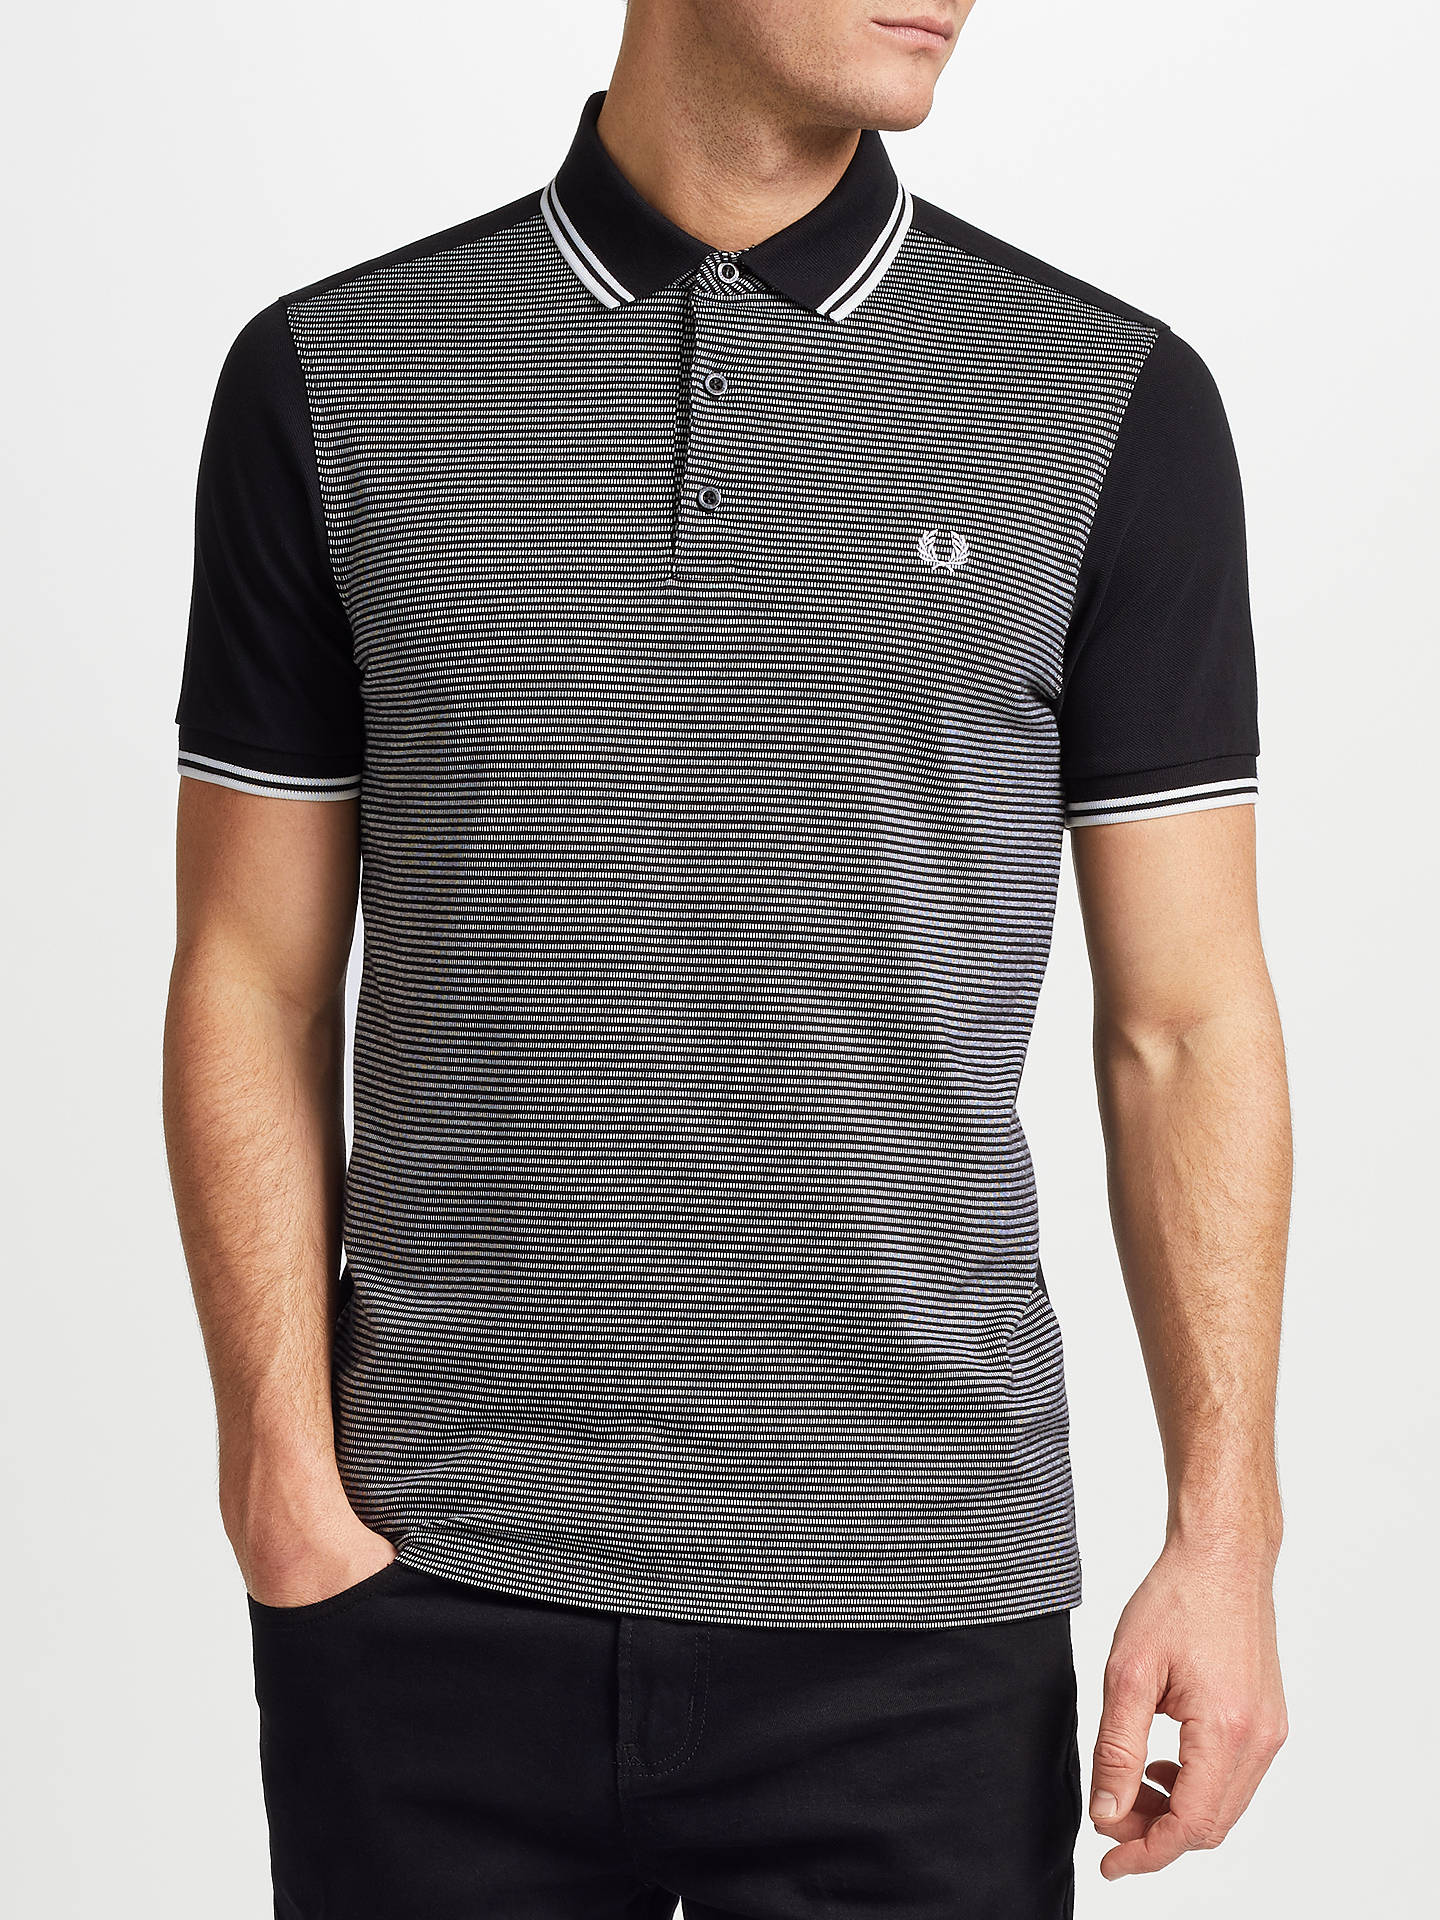 50b6fb6d Buy Fred Perry Jacquard Panel Polo Shirt, Black, S Online at johnlewis.com  ...